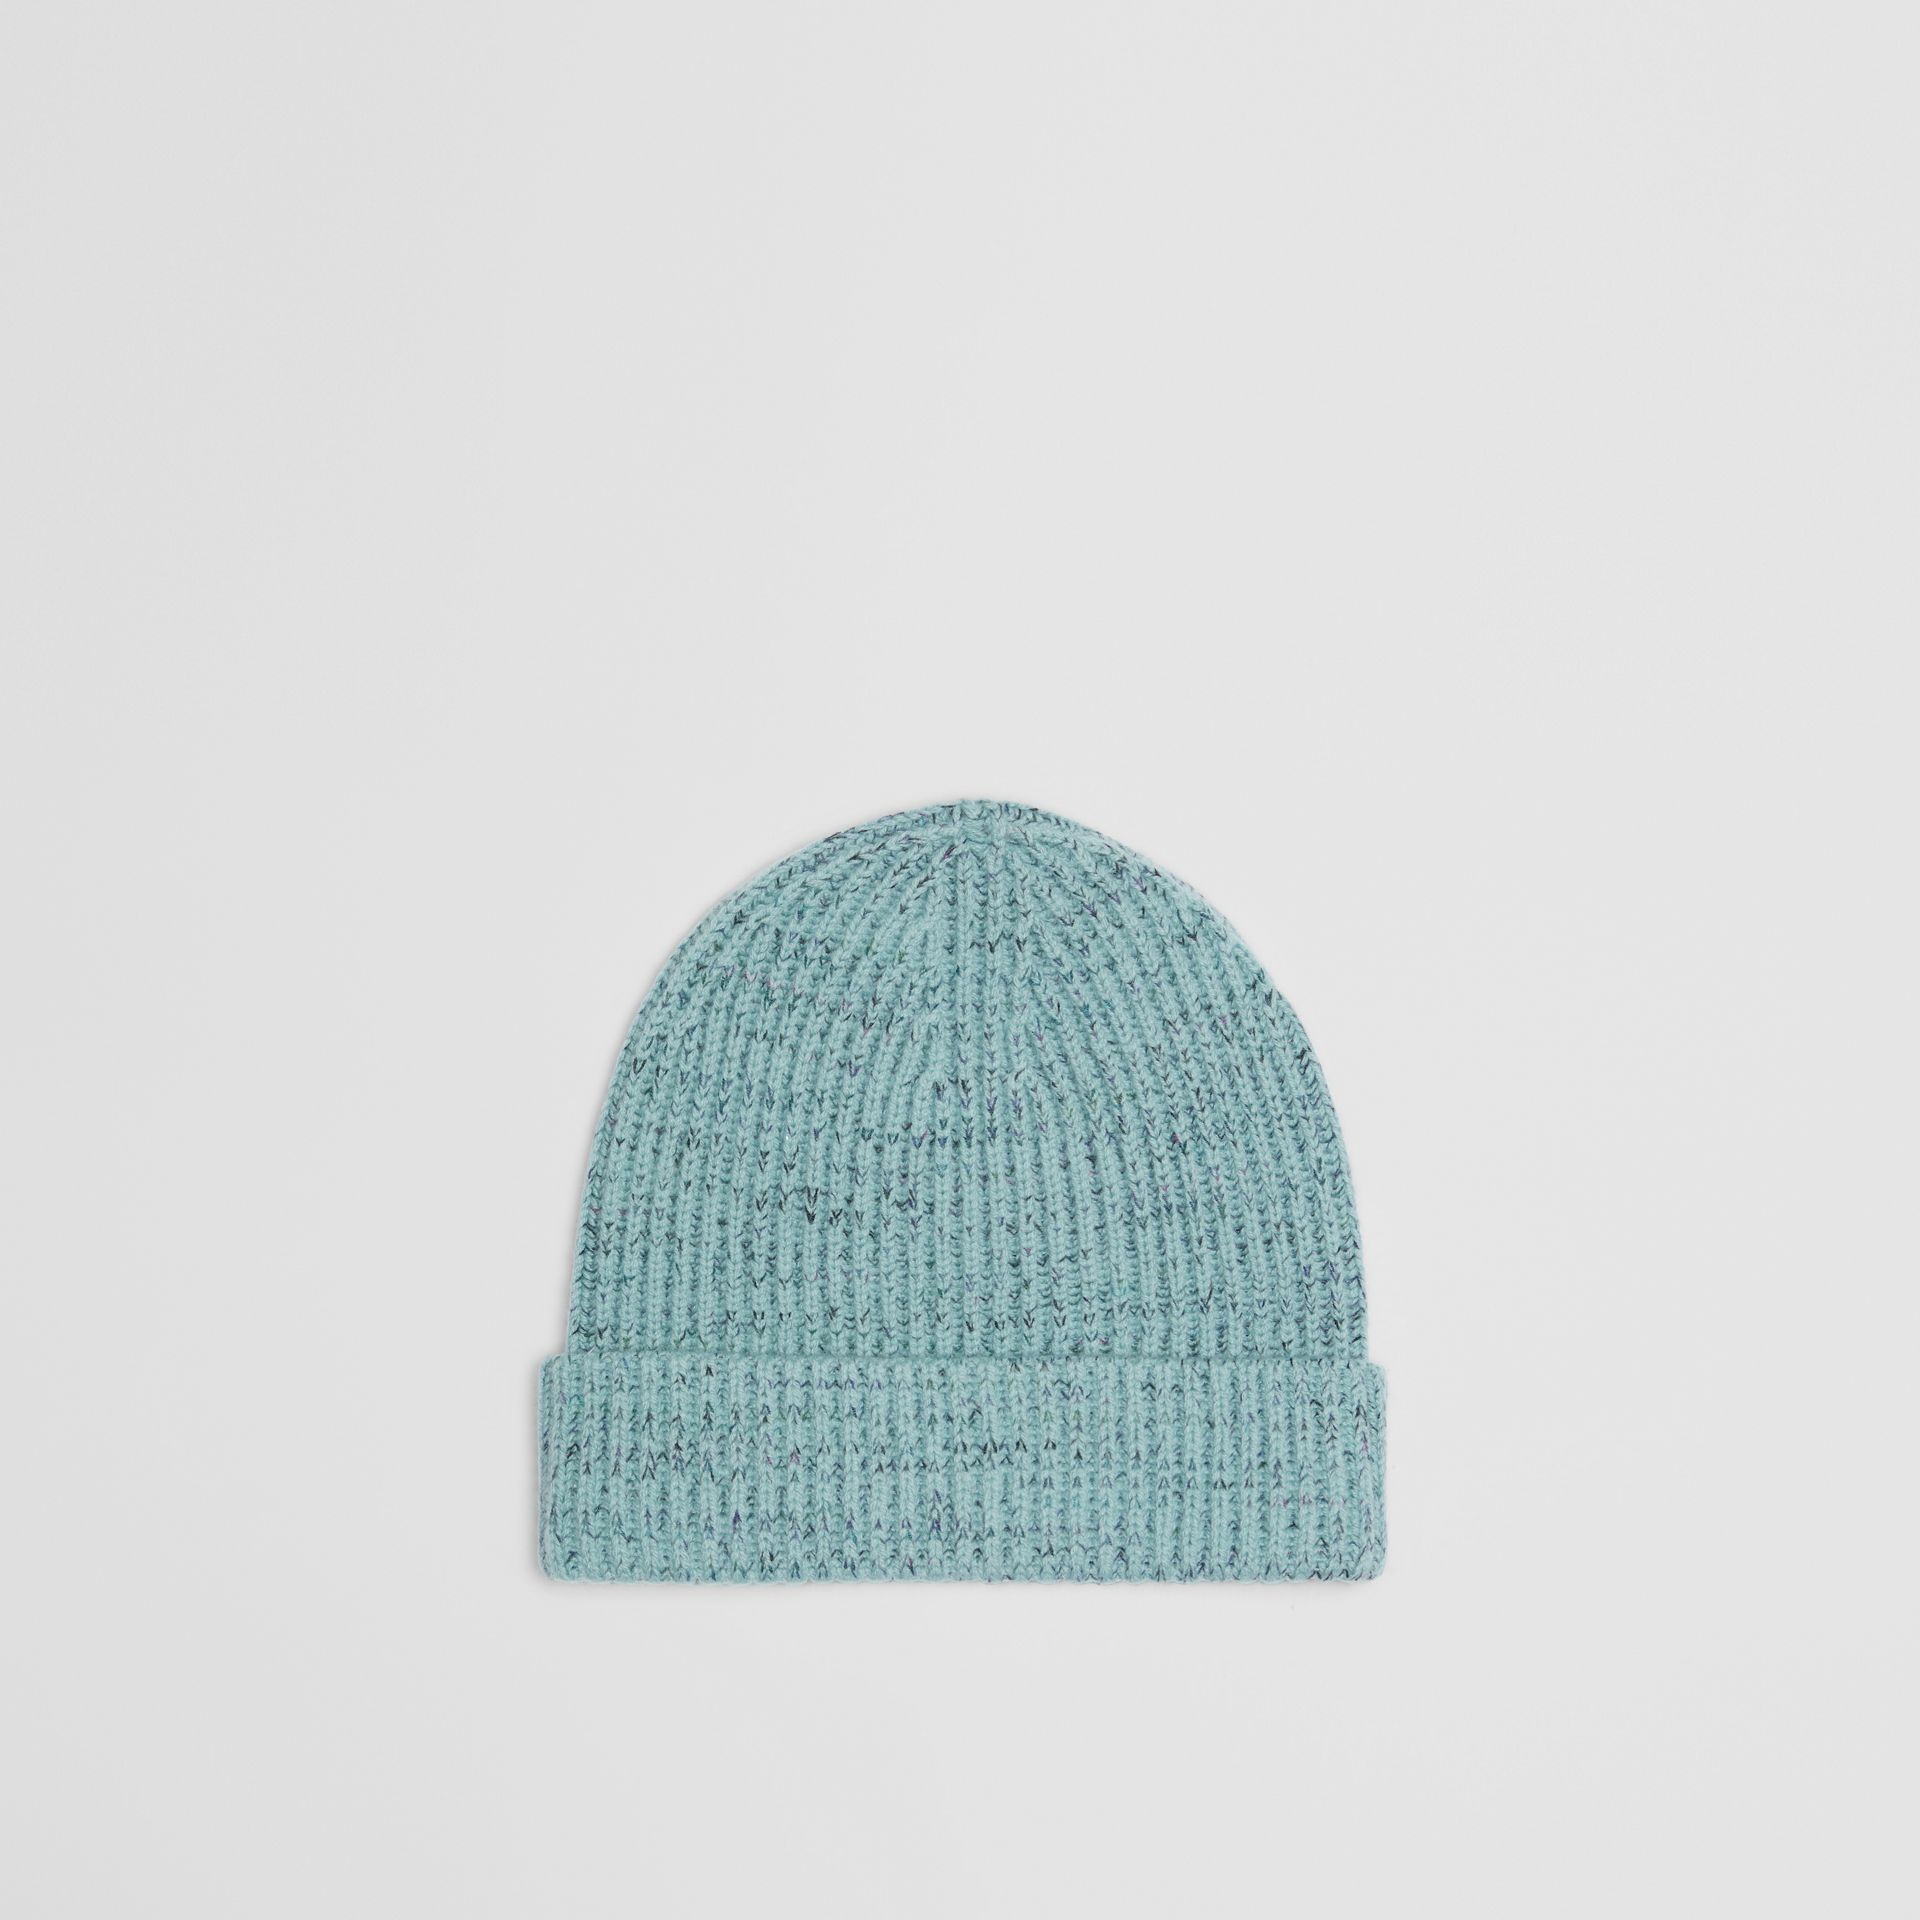 Embroidered Archive Logo Wool Blend Beanie in Blue Topaz | Burberry - gallery image 3